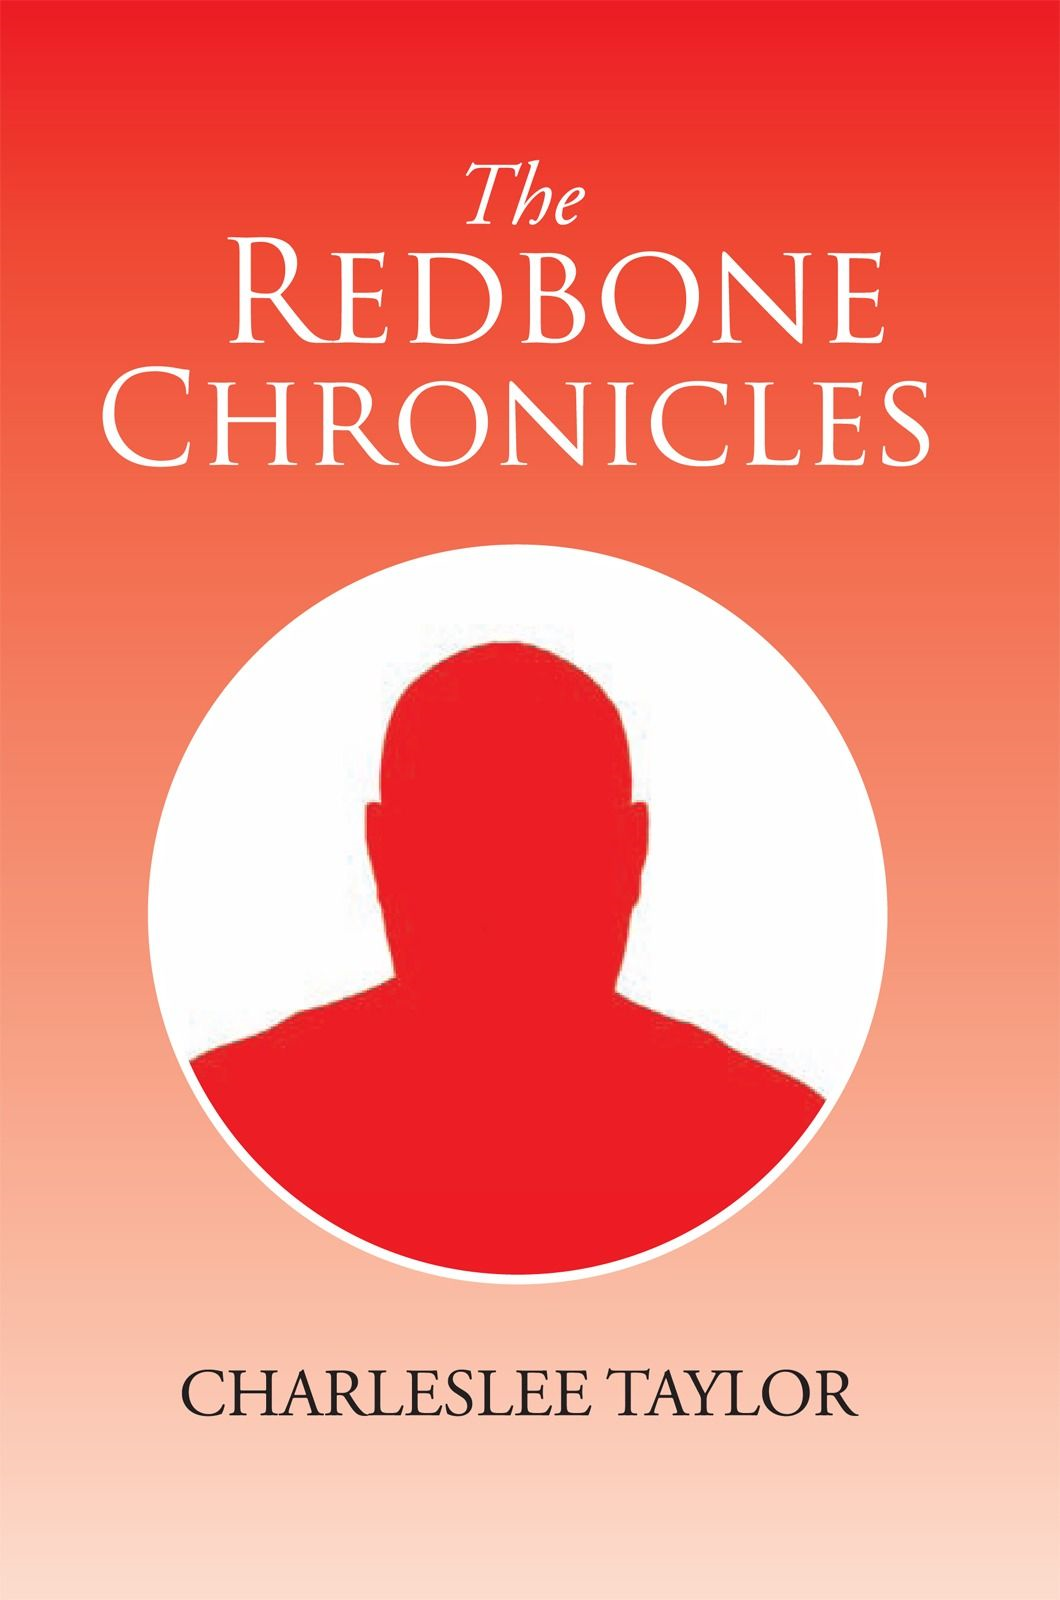 The Redbone Chronicles